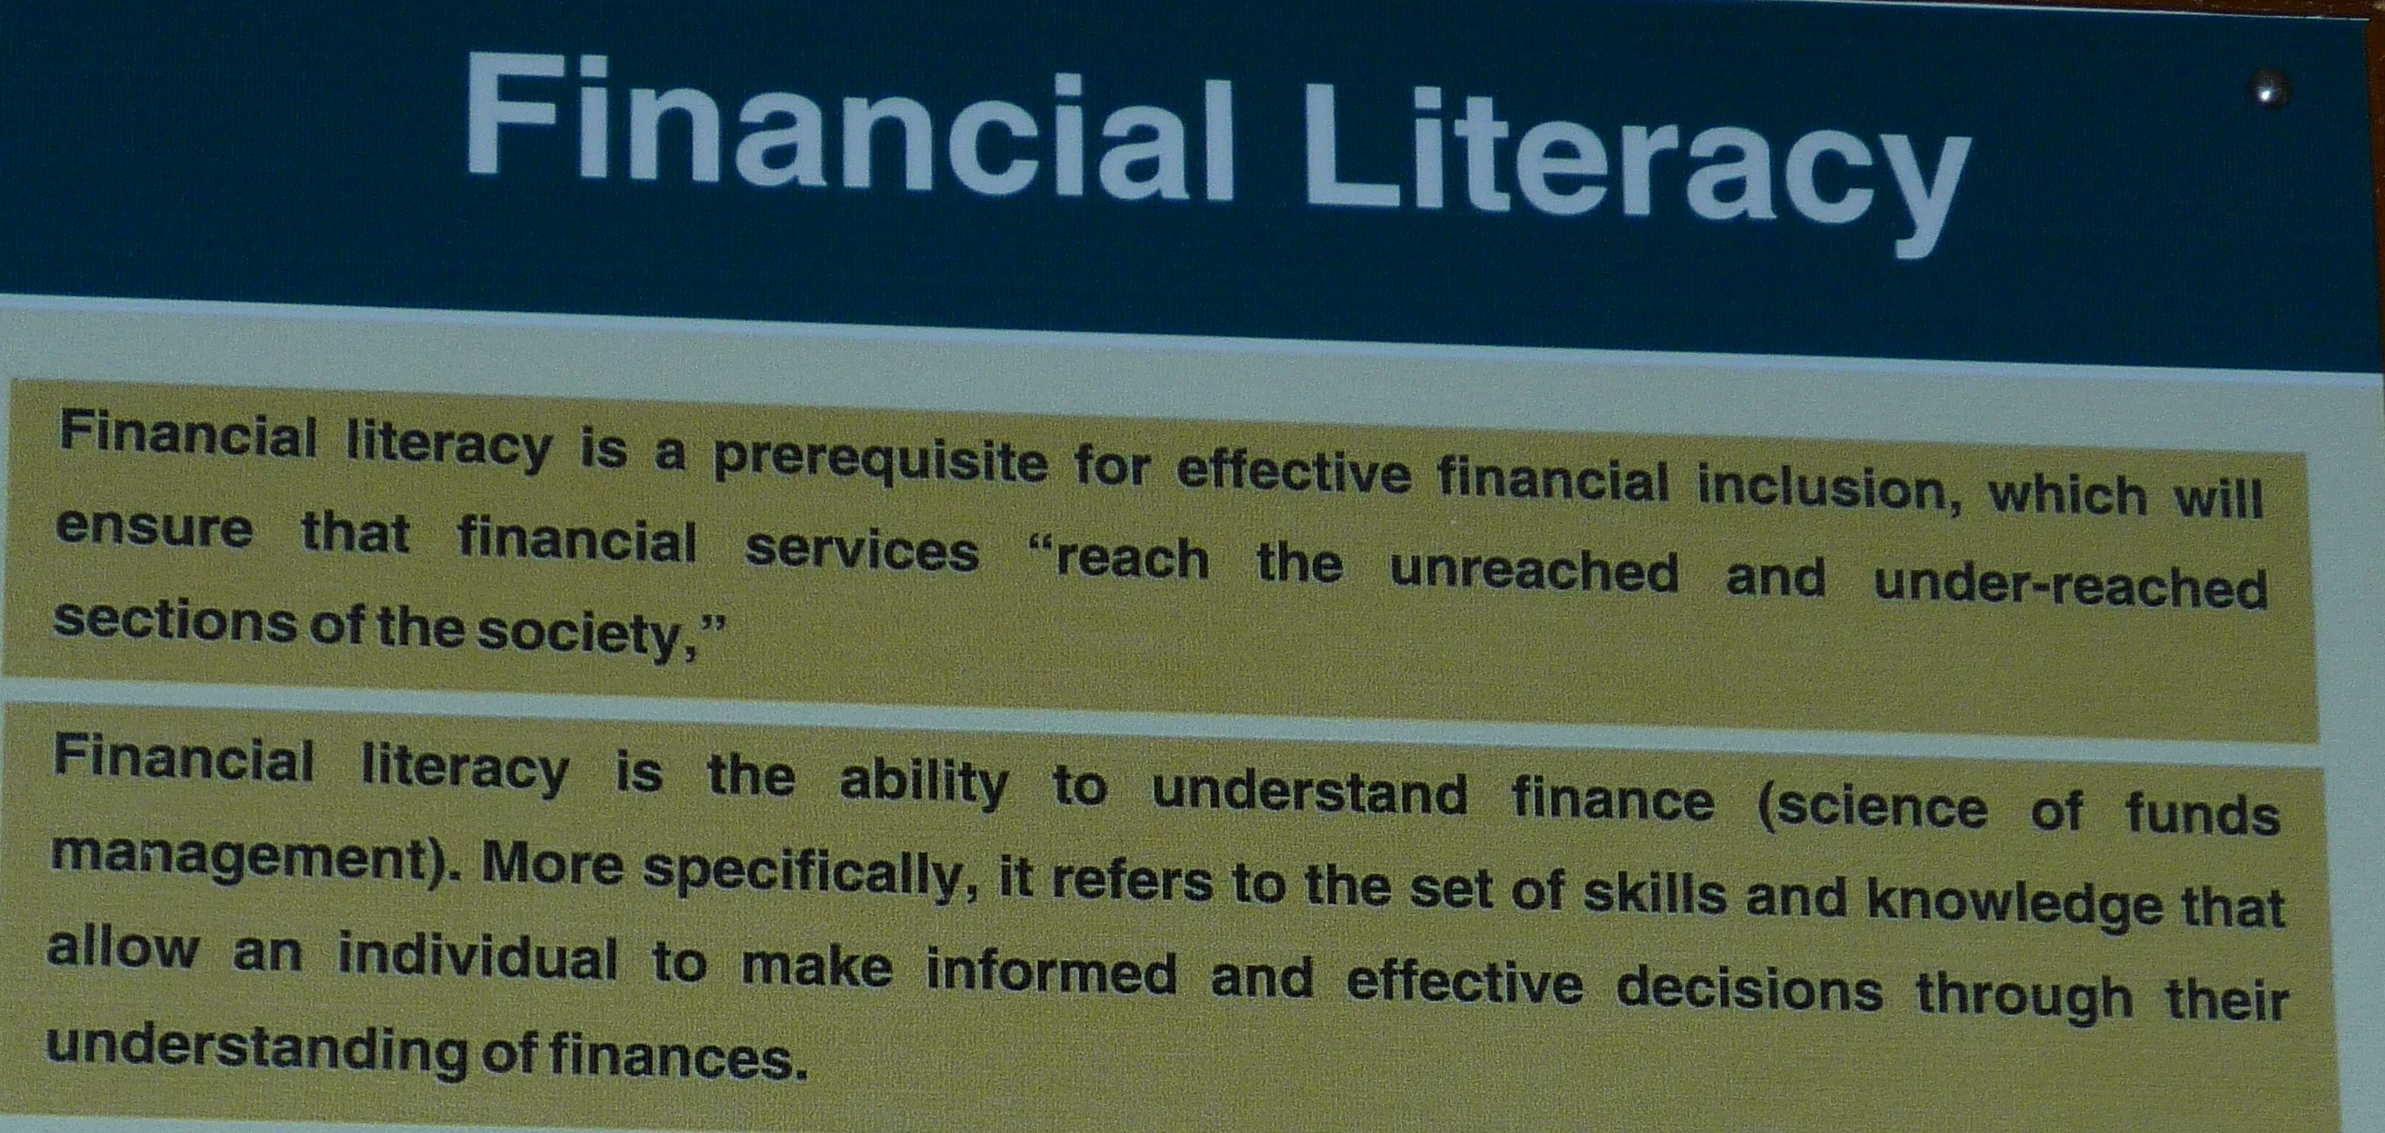 financial literacy in the philippines essay